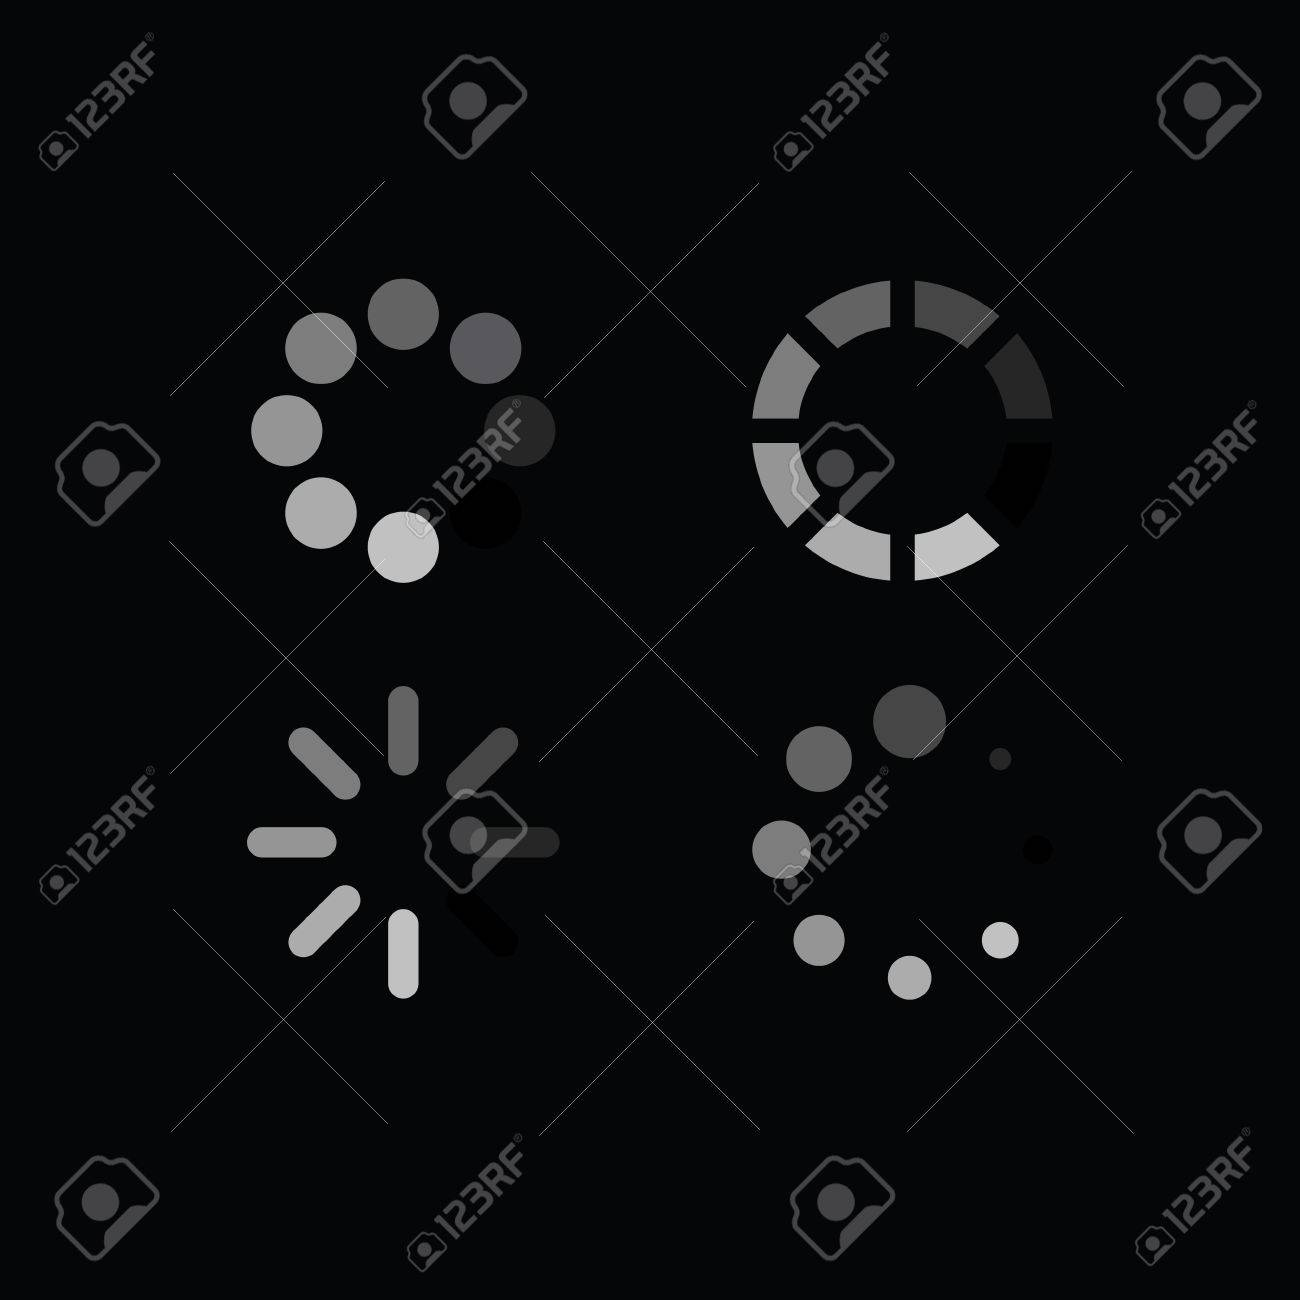 Set of loading symbols royalty free cliparts vectors and stock set of loading symbols stock vector 38570732 biocorpaavc Image collections